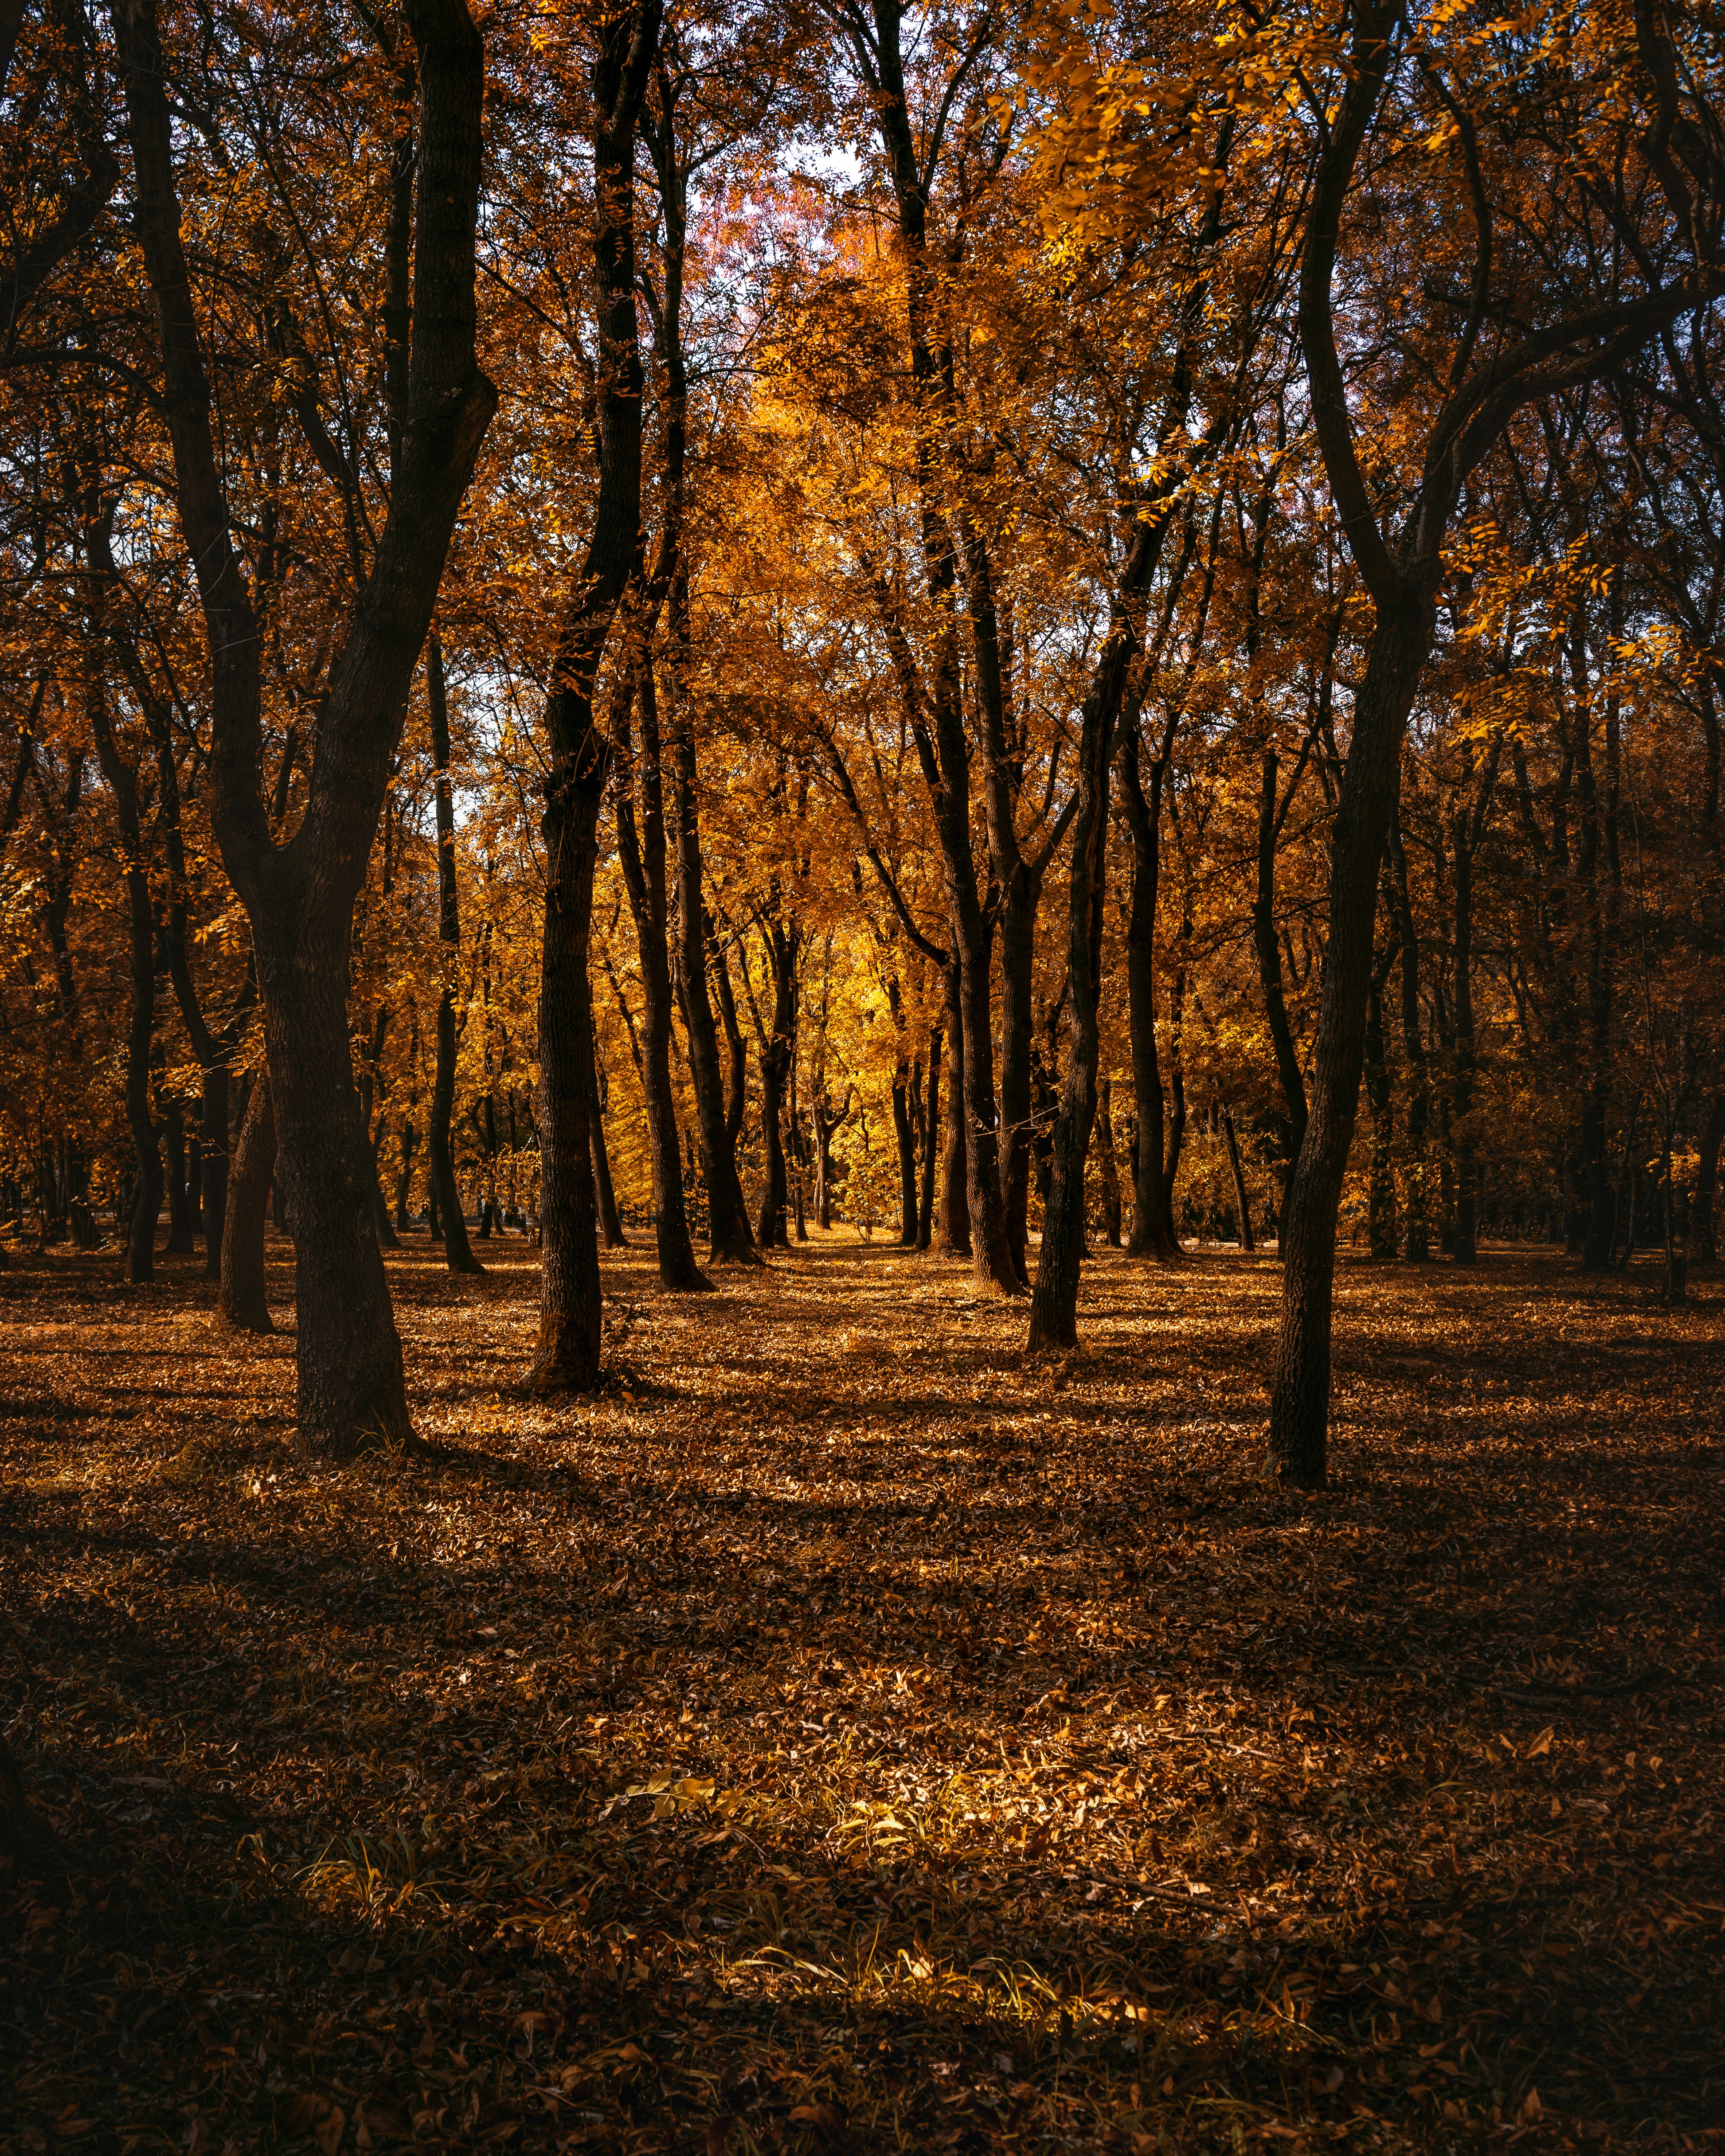 157266 download wallpaper Forest, Autumn, Nature, Trees, Park, Path screensavers and pictures for free